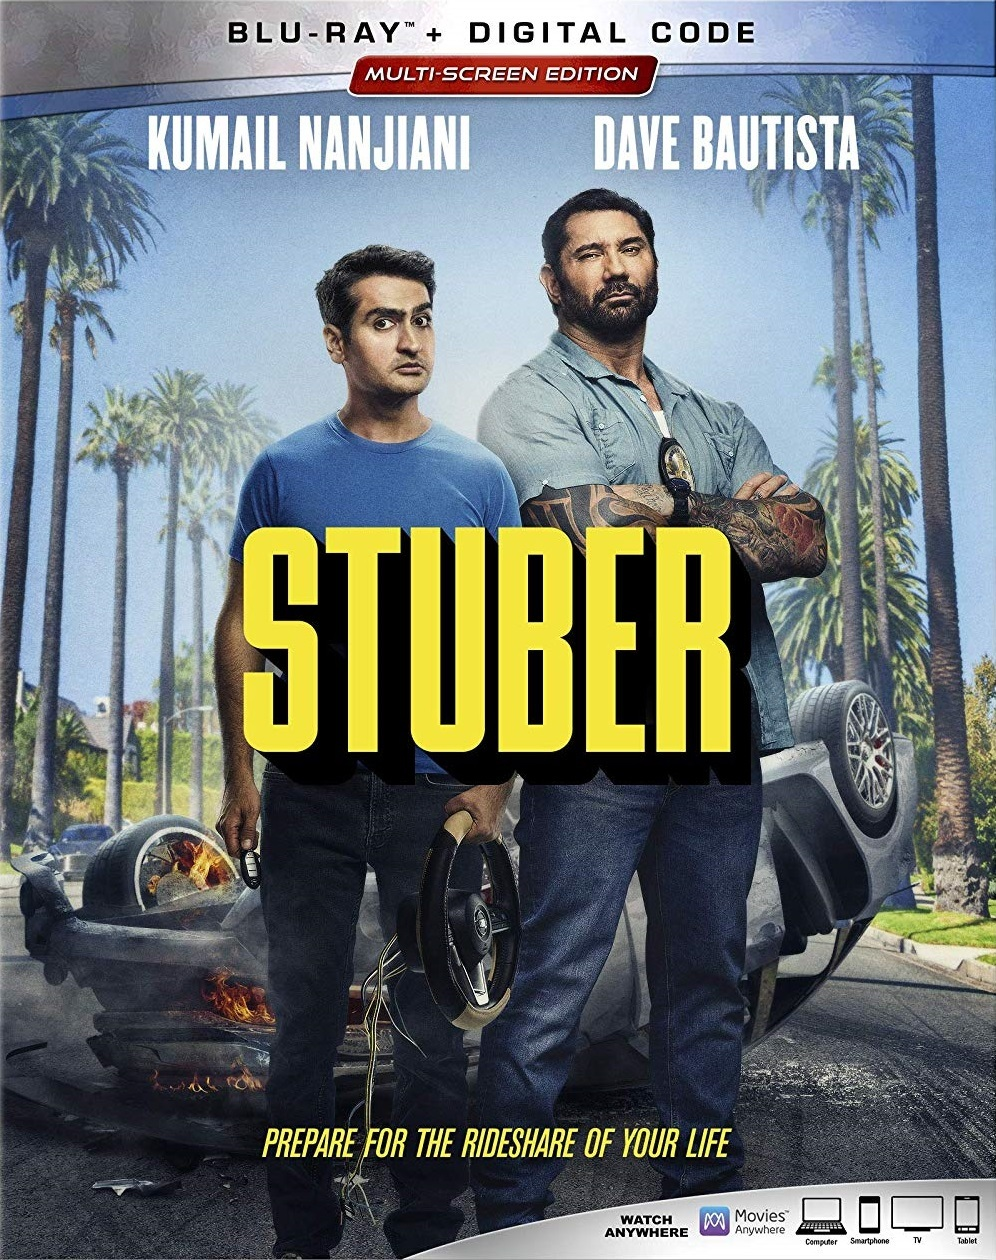 STUBER Blu-ray Review